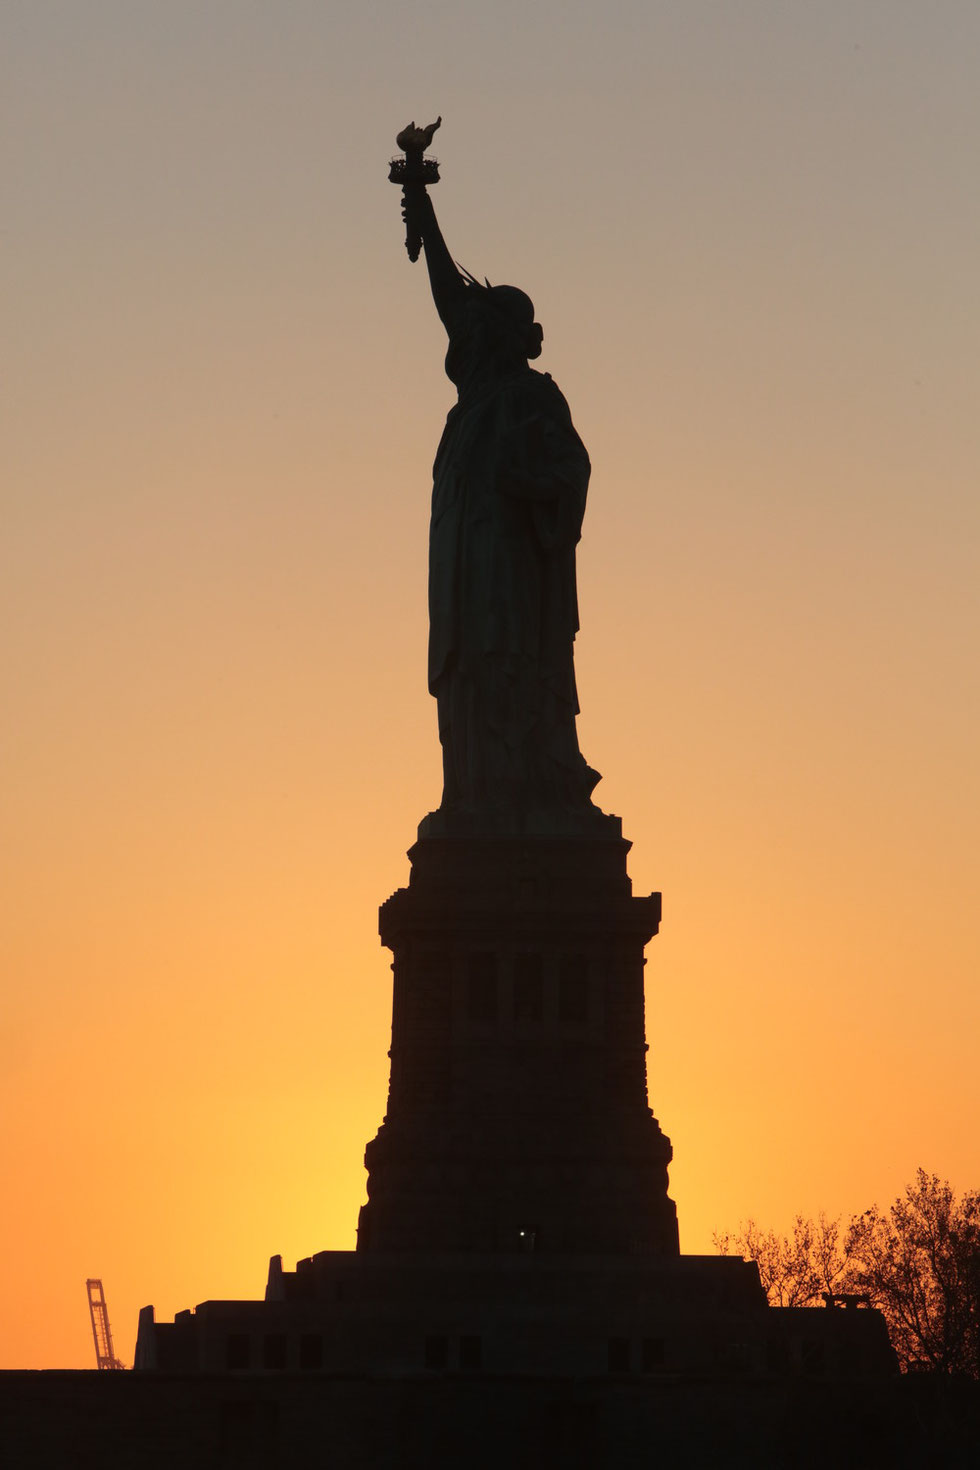 Liberty Island. Statue of Liberty National Monument. Auguste Bartholdi. 1886.